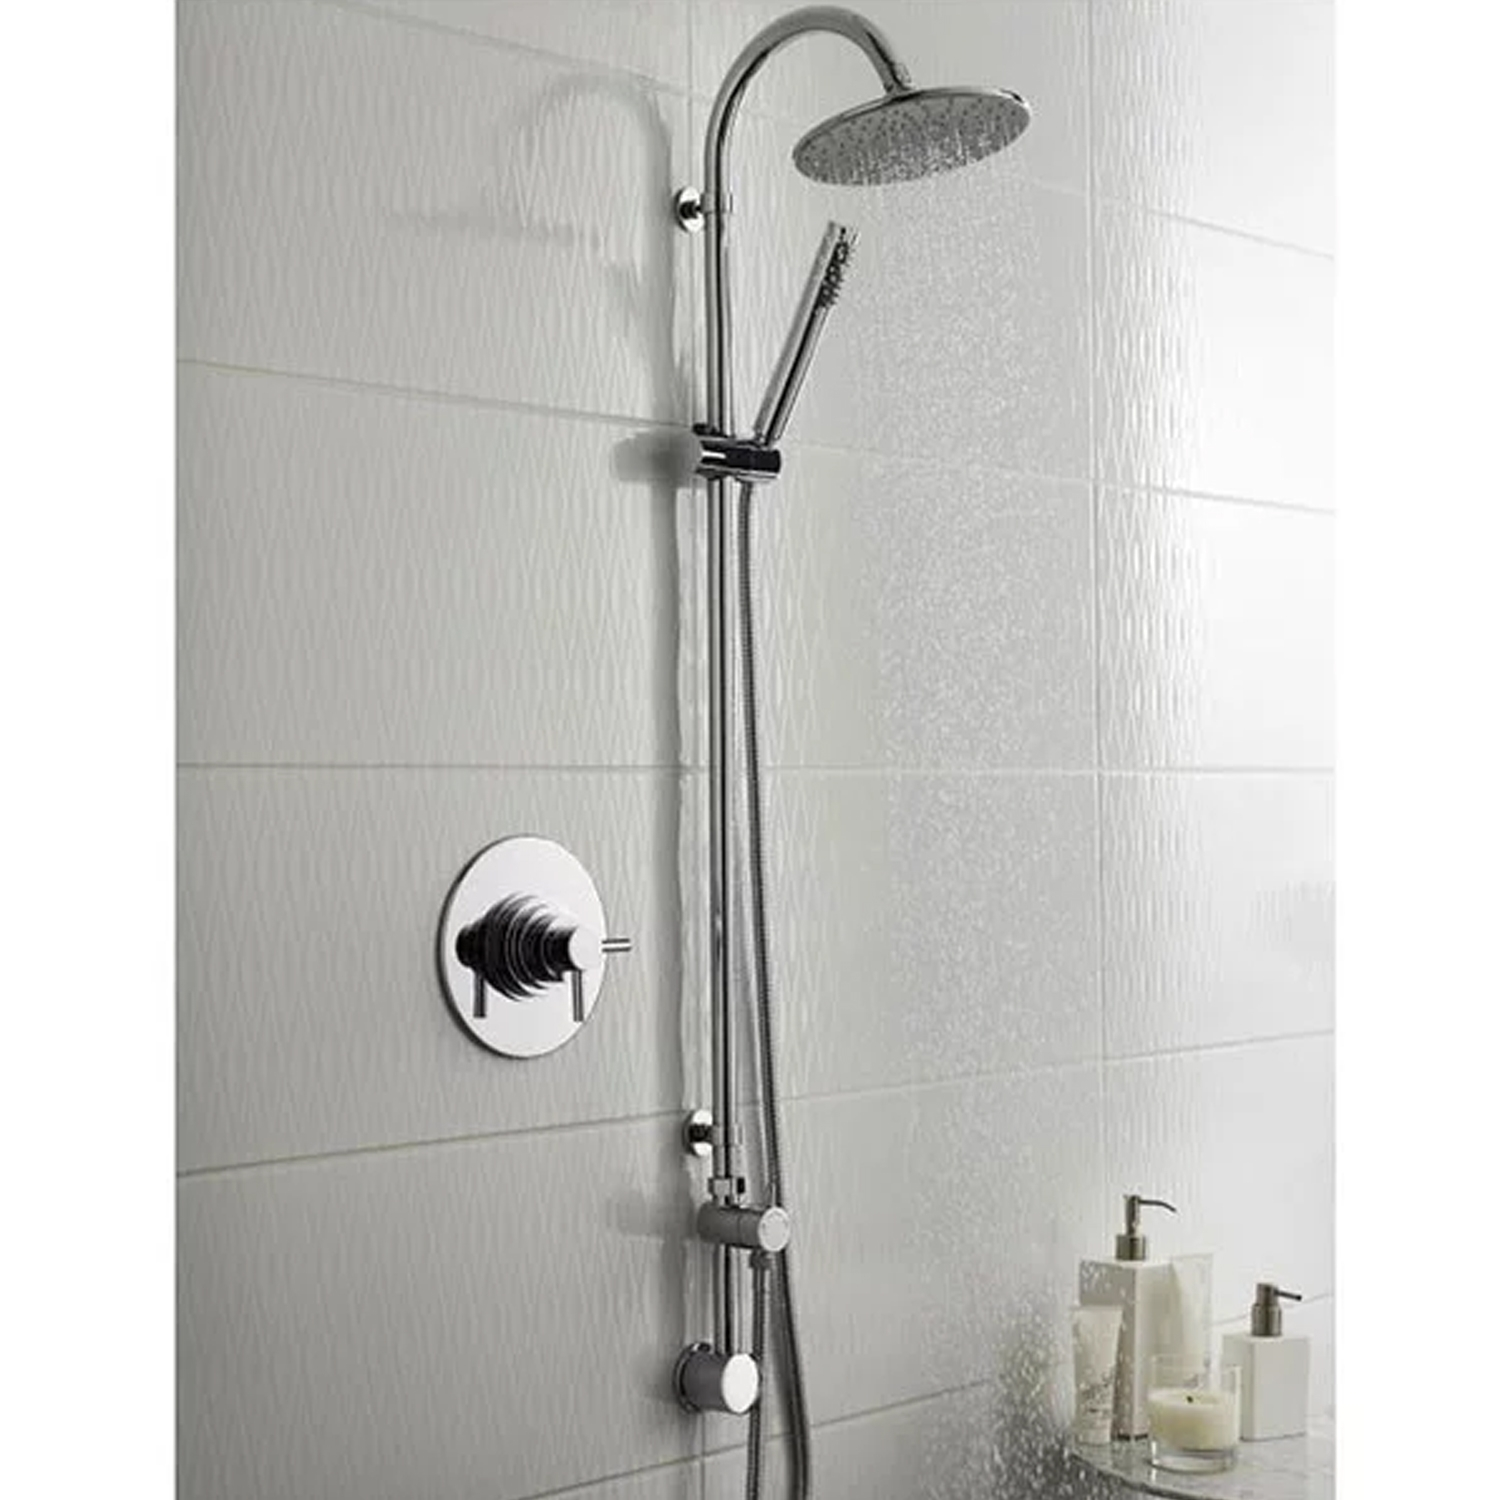 Hudson Reed Destiny Shower Kit with In-Built Shower Valve and Diverter, Pencil Handset and Fixed Head, Chrome-1